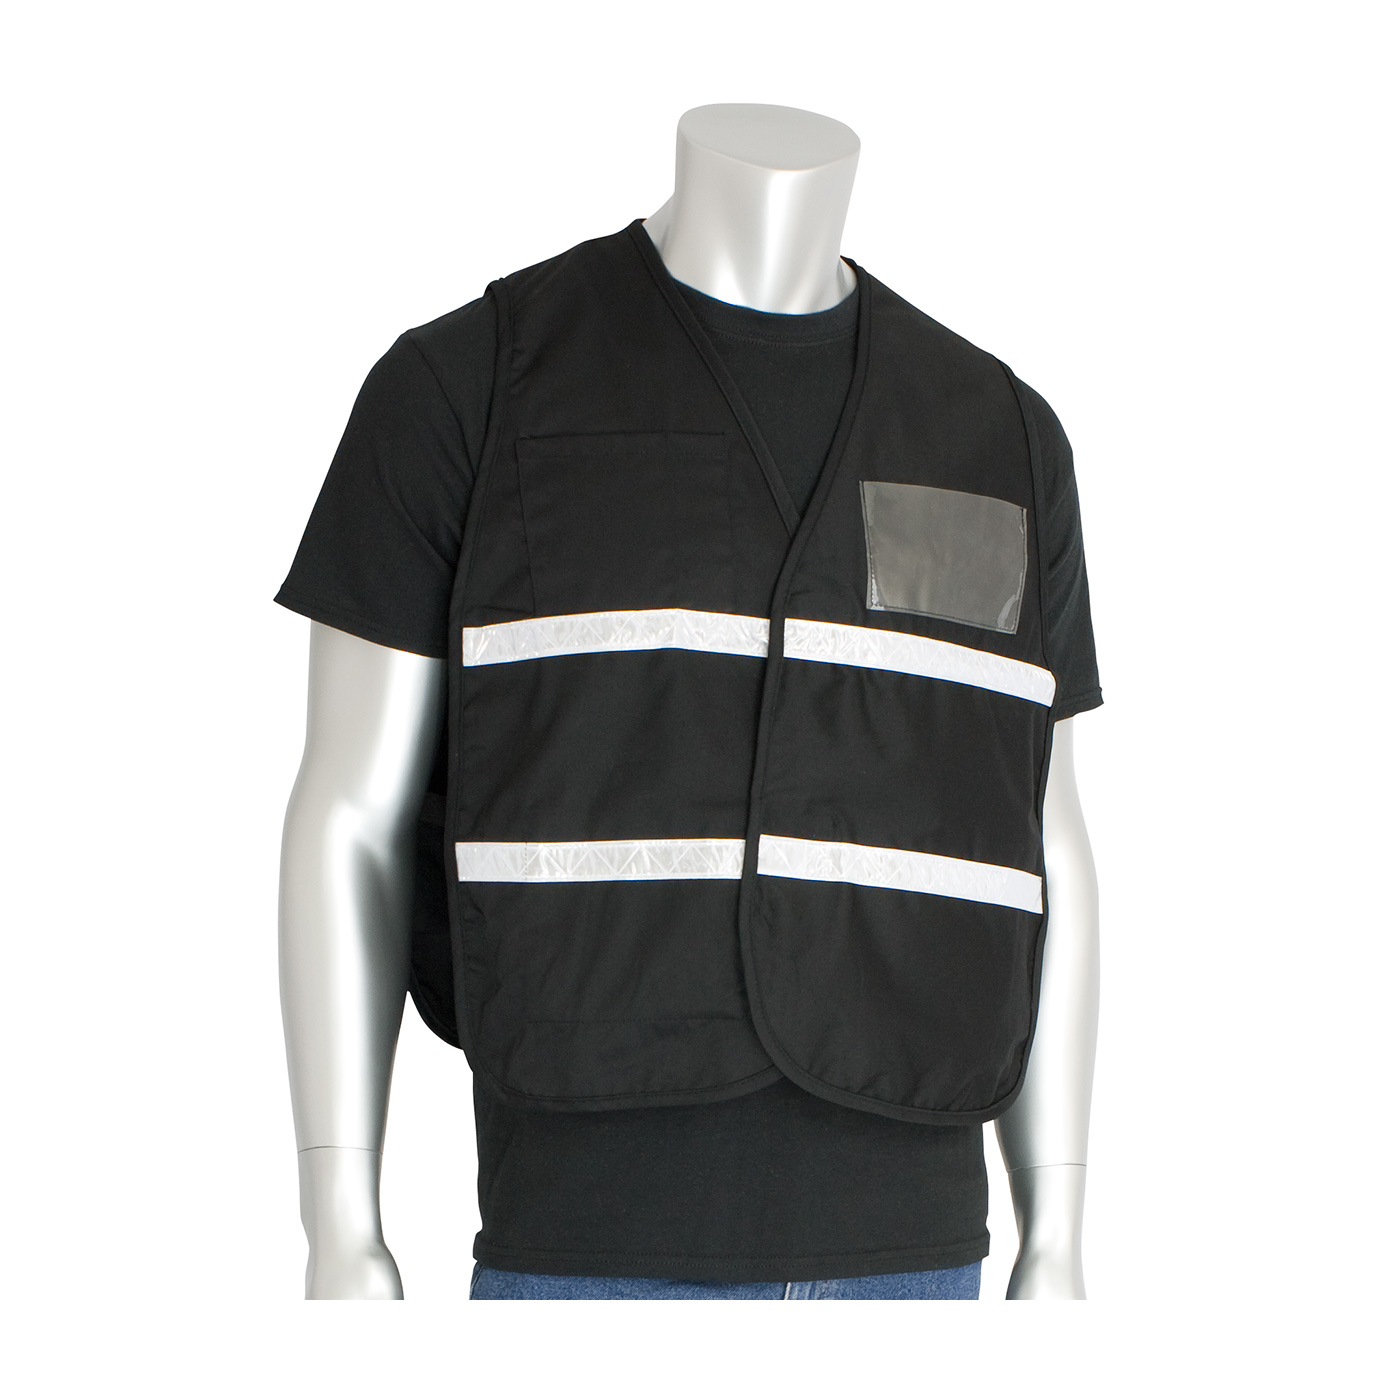 #300-1502 PIP® Non-ANSI  Black Incident Command Vest - 100% Polyester